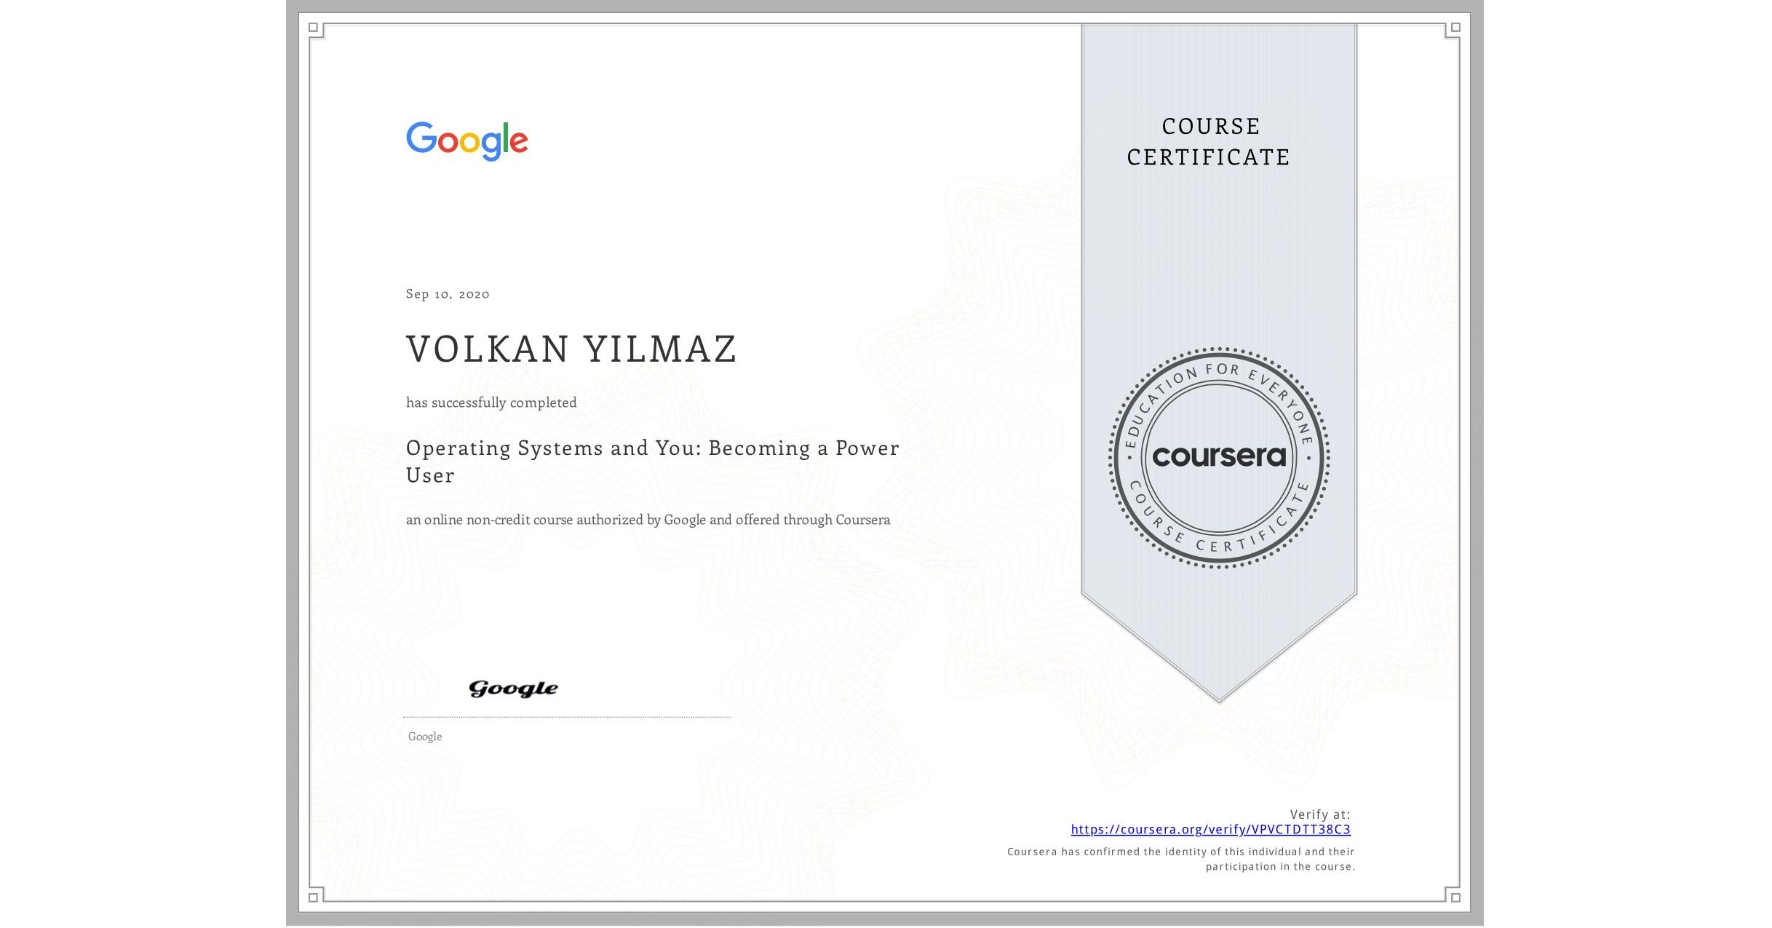 View certificate for VOLKAN YILMAZ, Operating Systems and You: Becoming a Power User, an online non-credit course authorized by Google and offered through Coursera